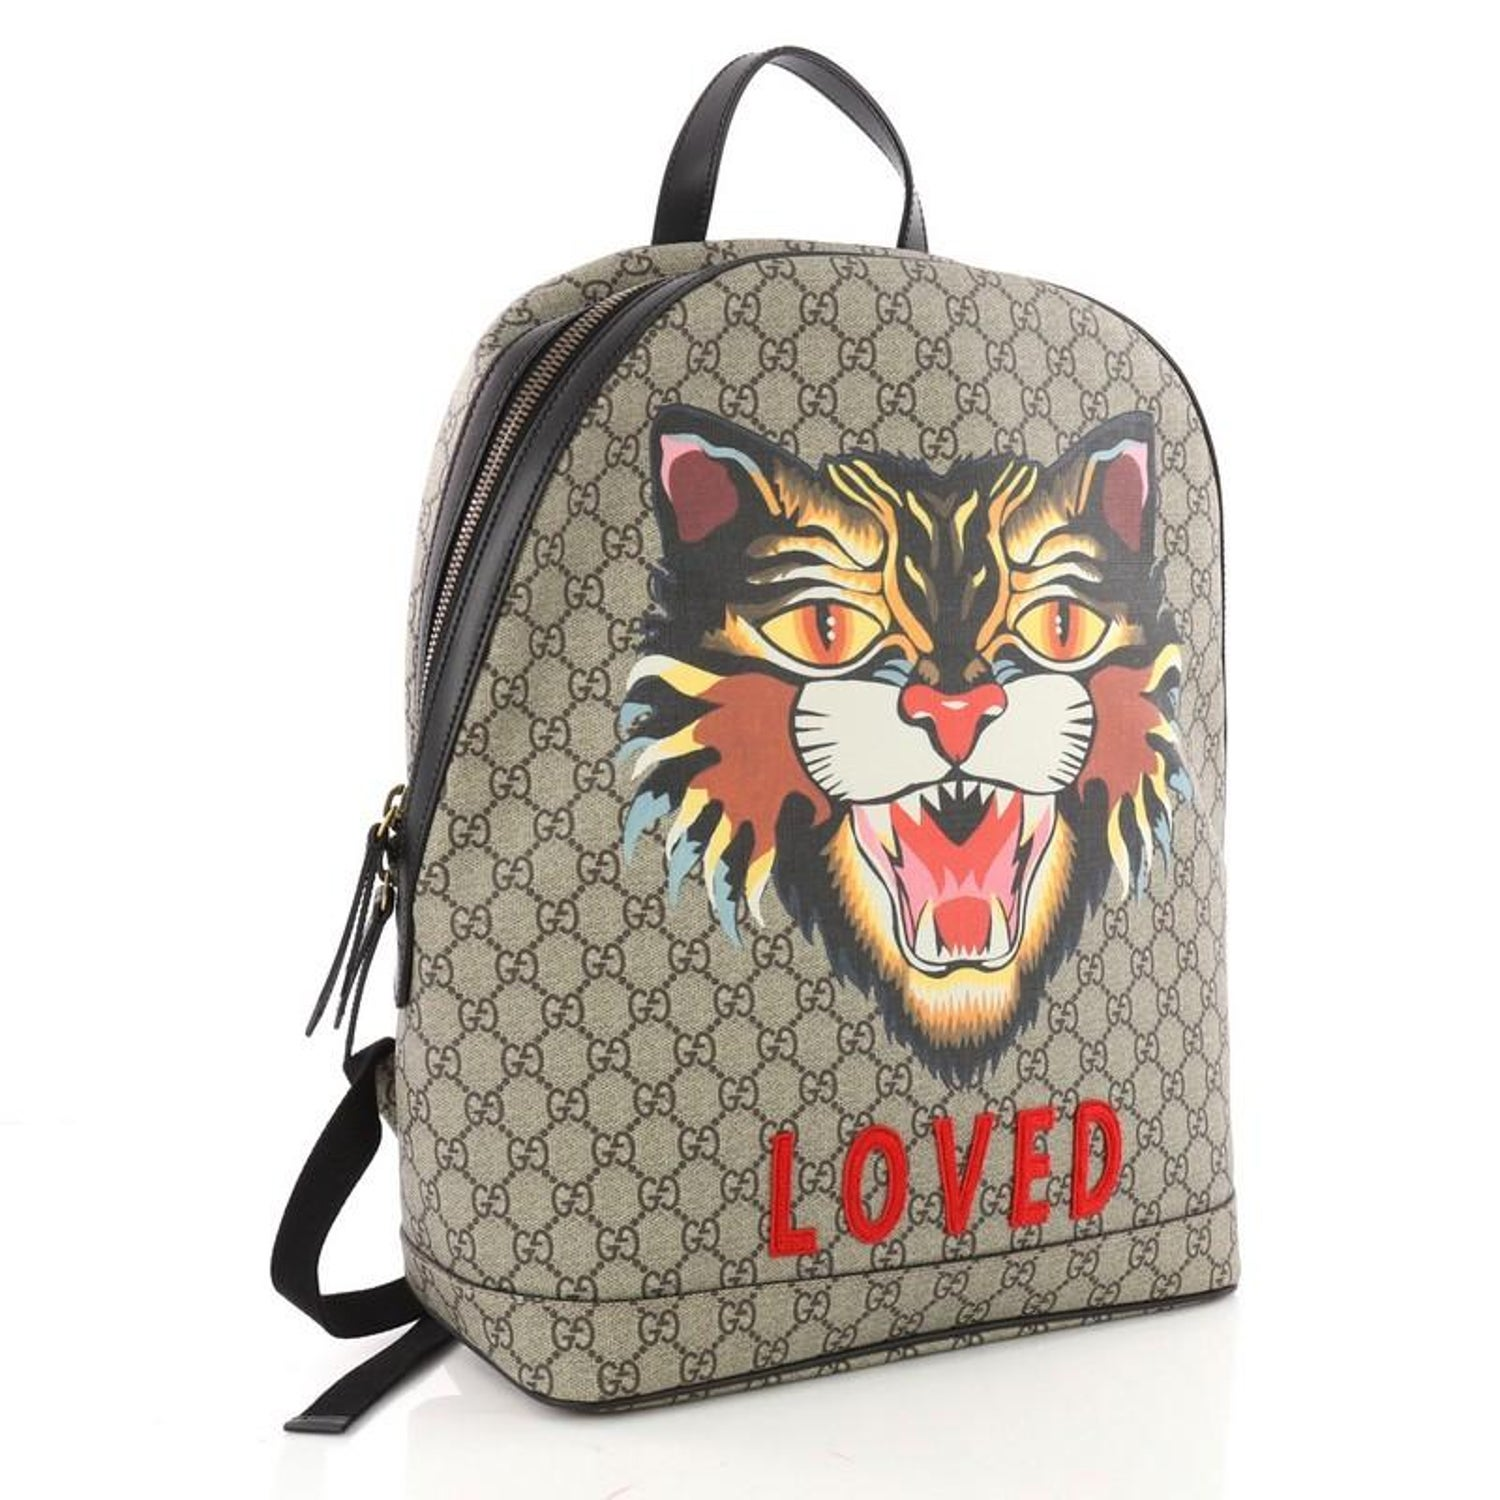 f38537cb45a6 Gucci Angry Cat Zip Backpack Printed GG Coated Canvas Medium at 1stdibs